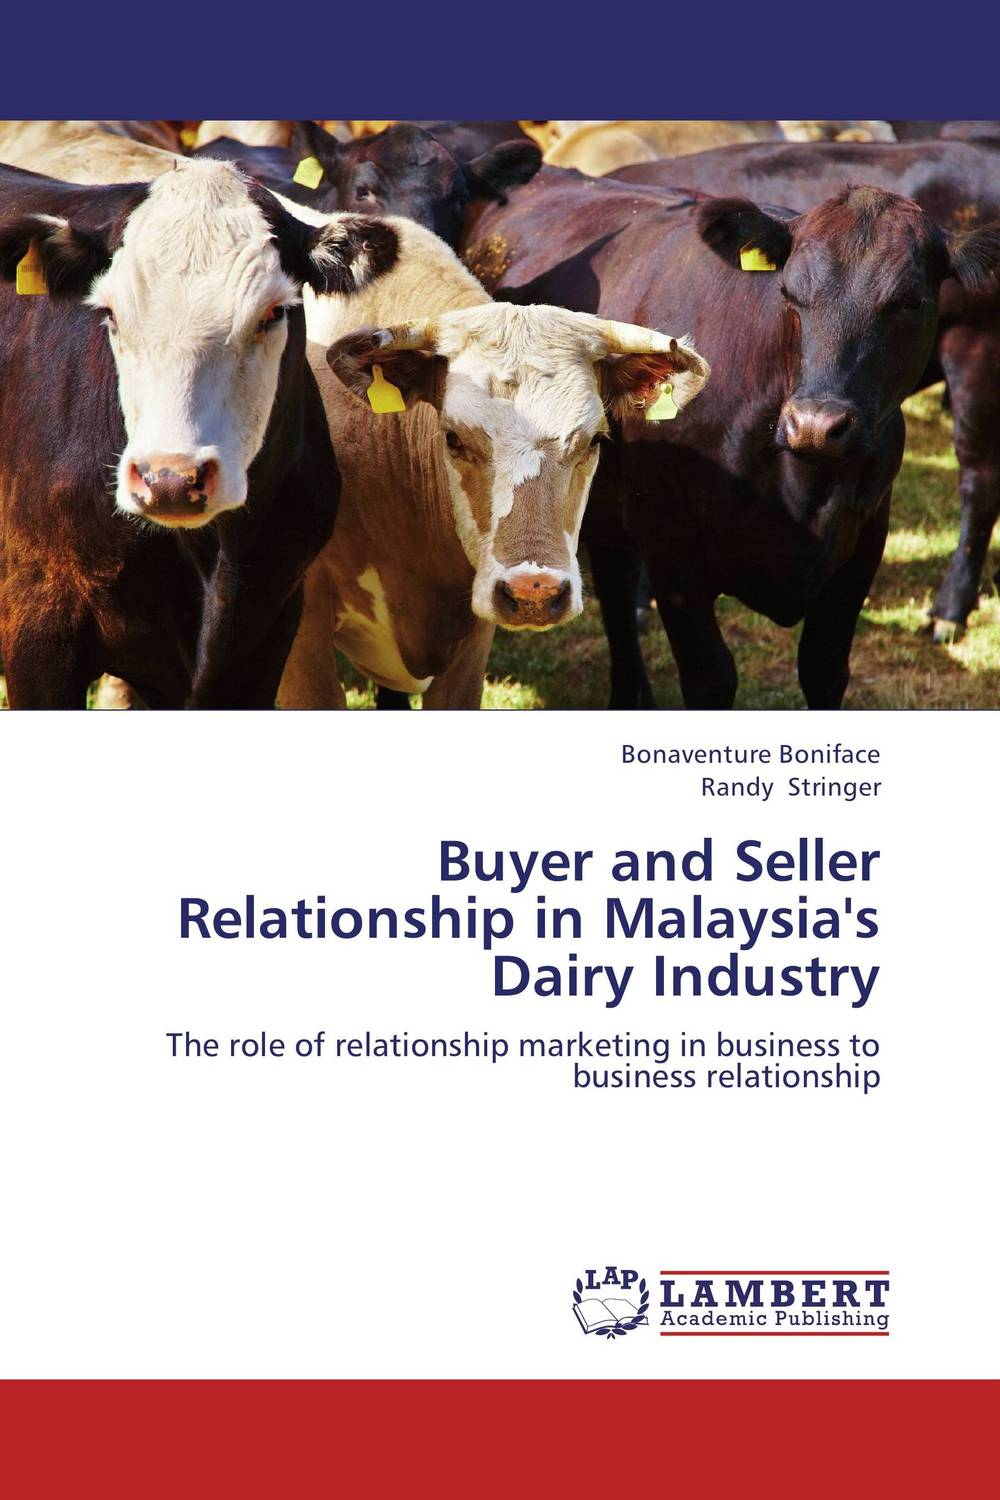 Buyer and Seller Relationship in Malaysia's Dairy Industry psychiatric consultation in long term care